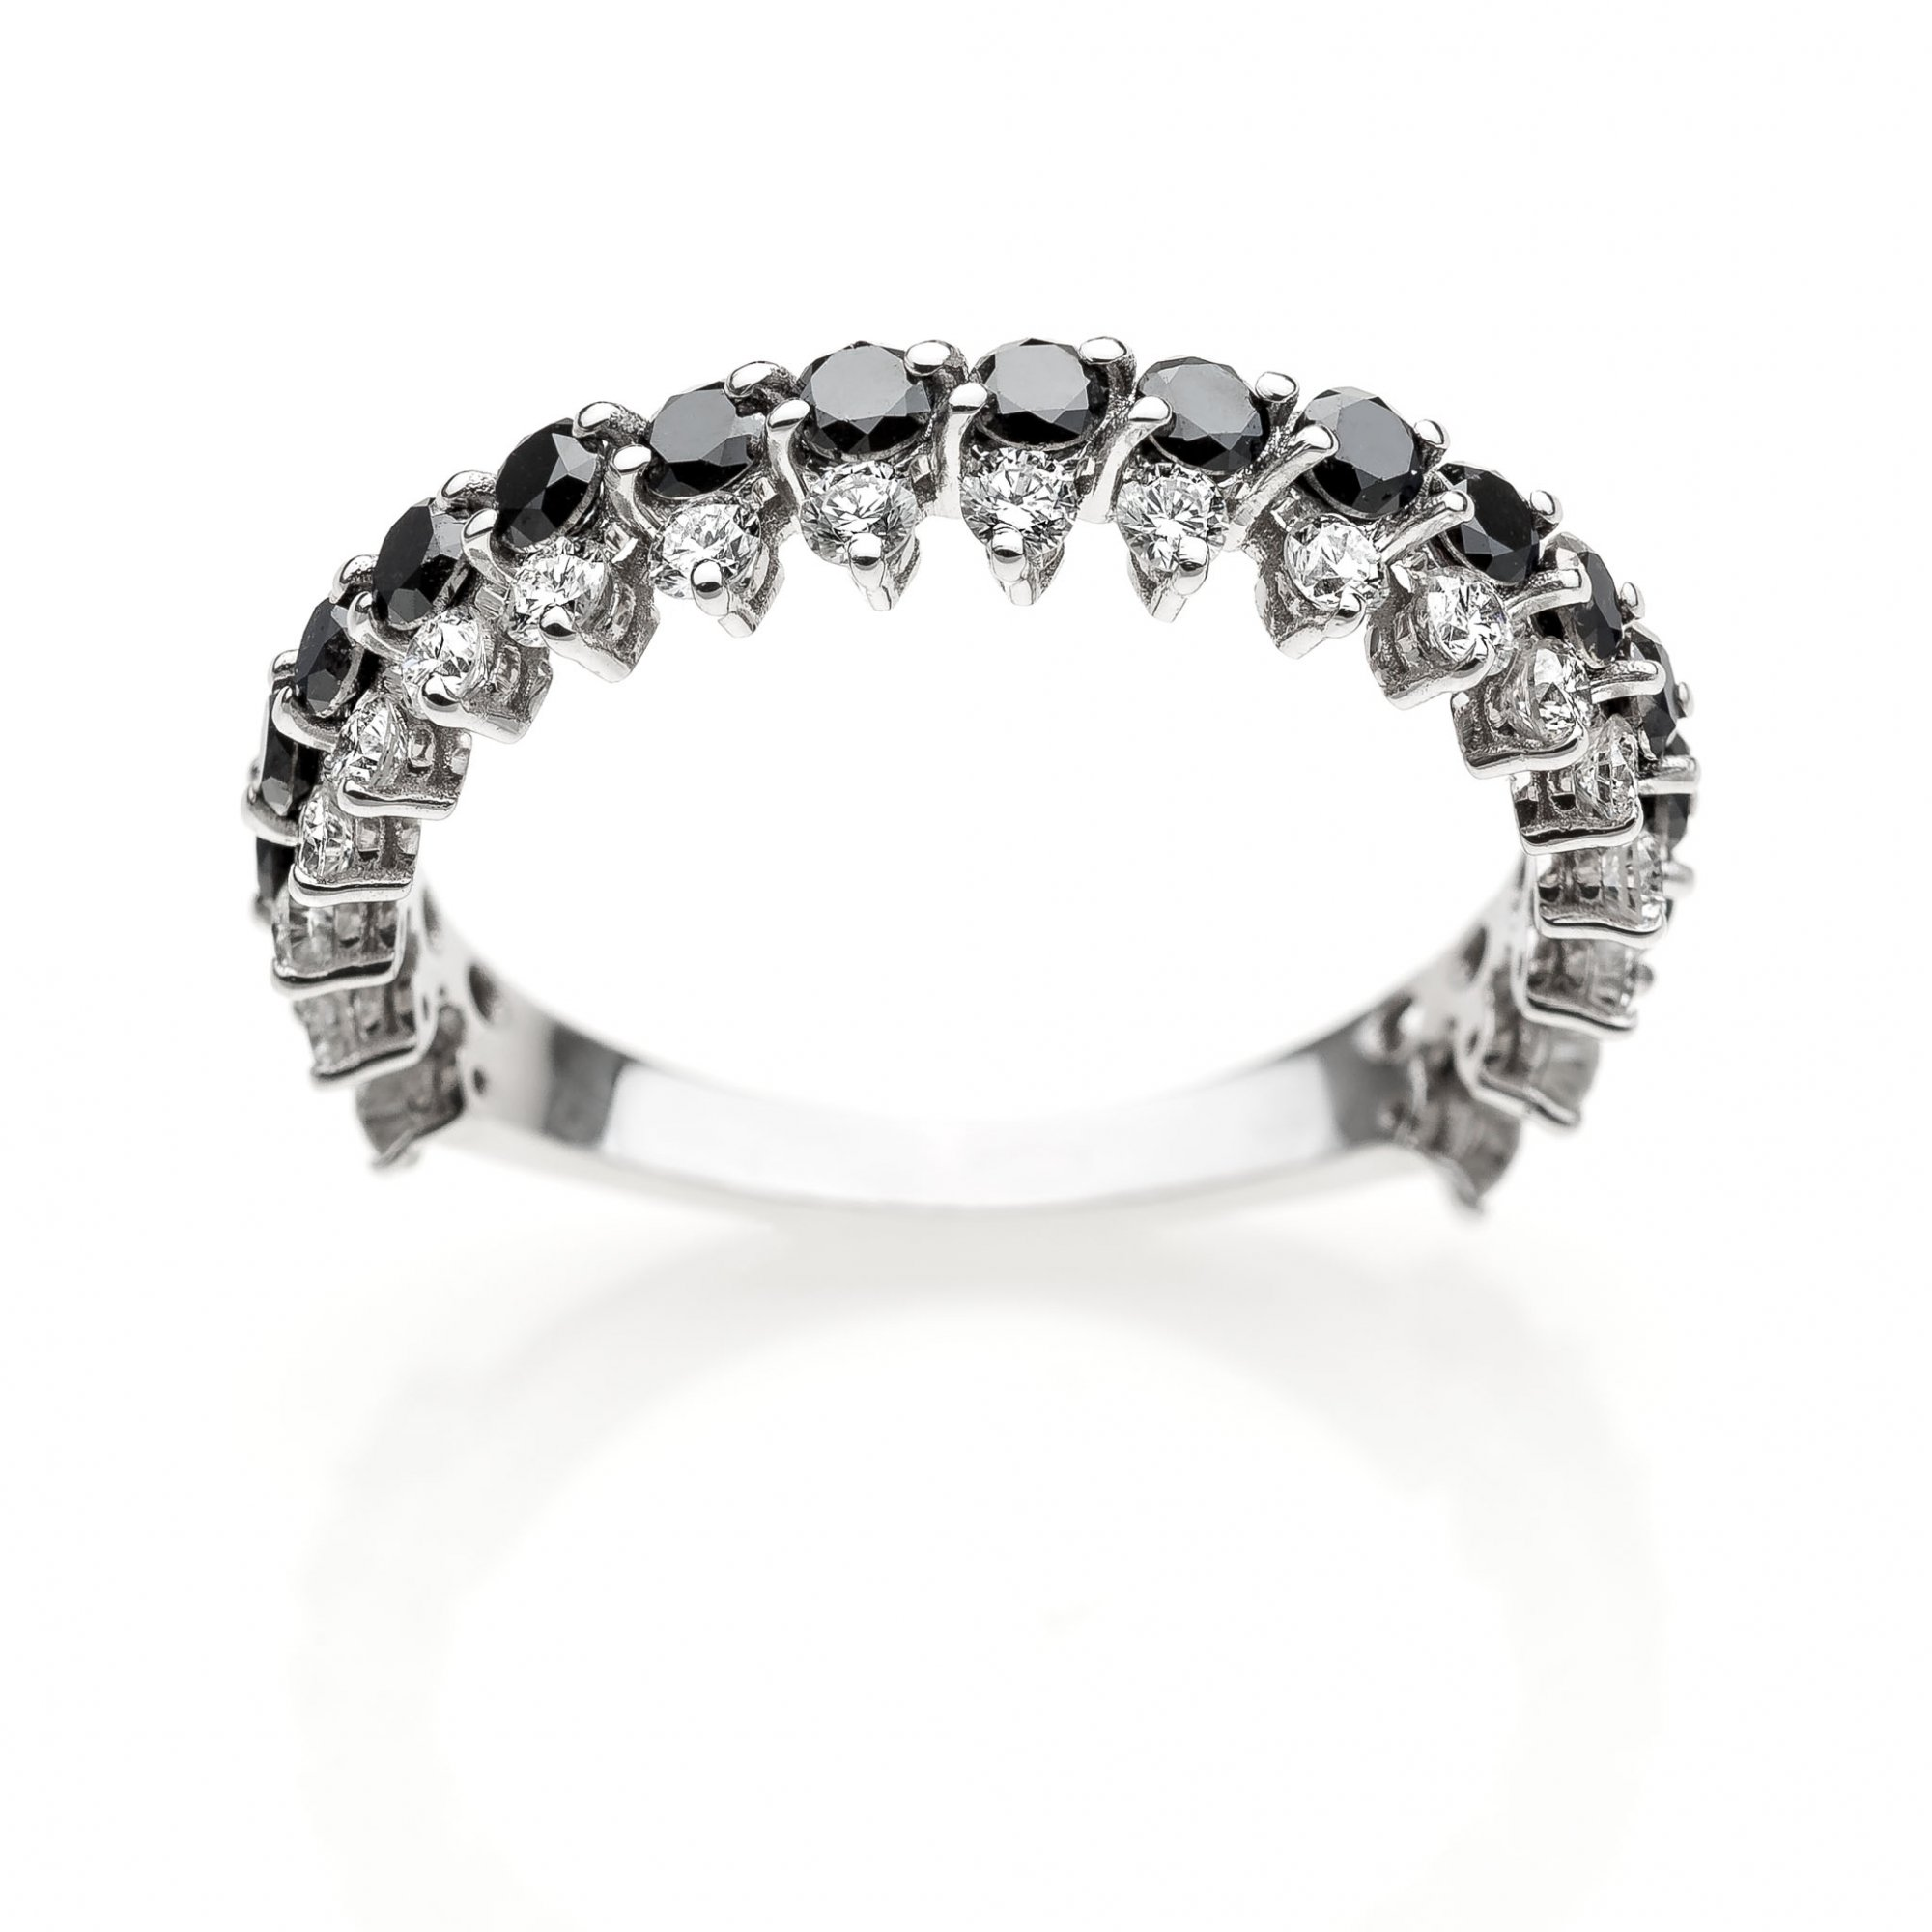 18 KT white gold ring with round brilliant cut diamonds ct.0.15 and black diamonds ct.0.45